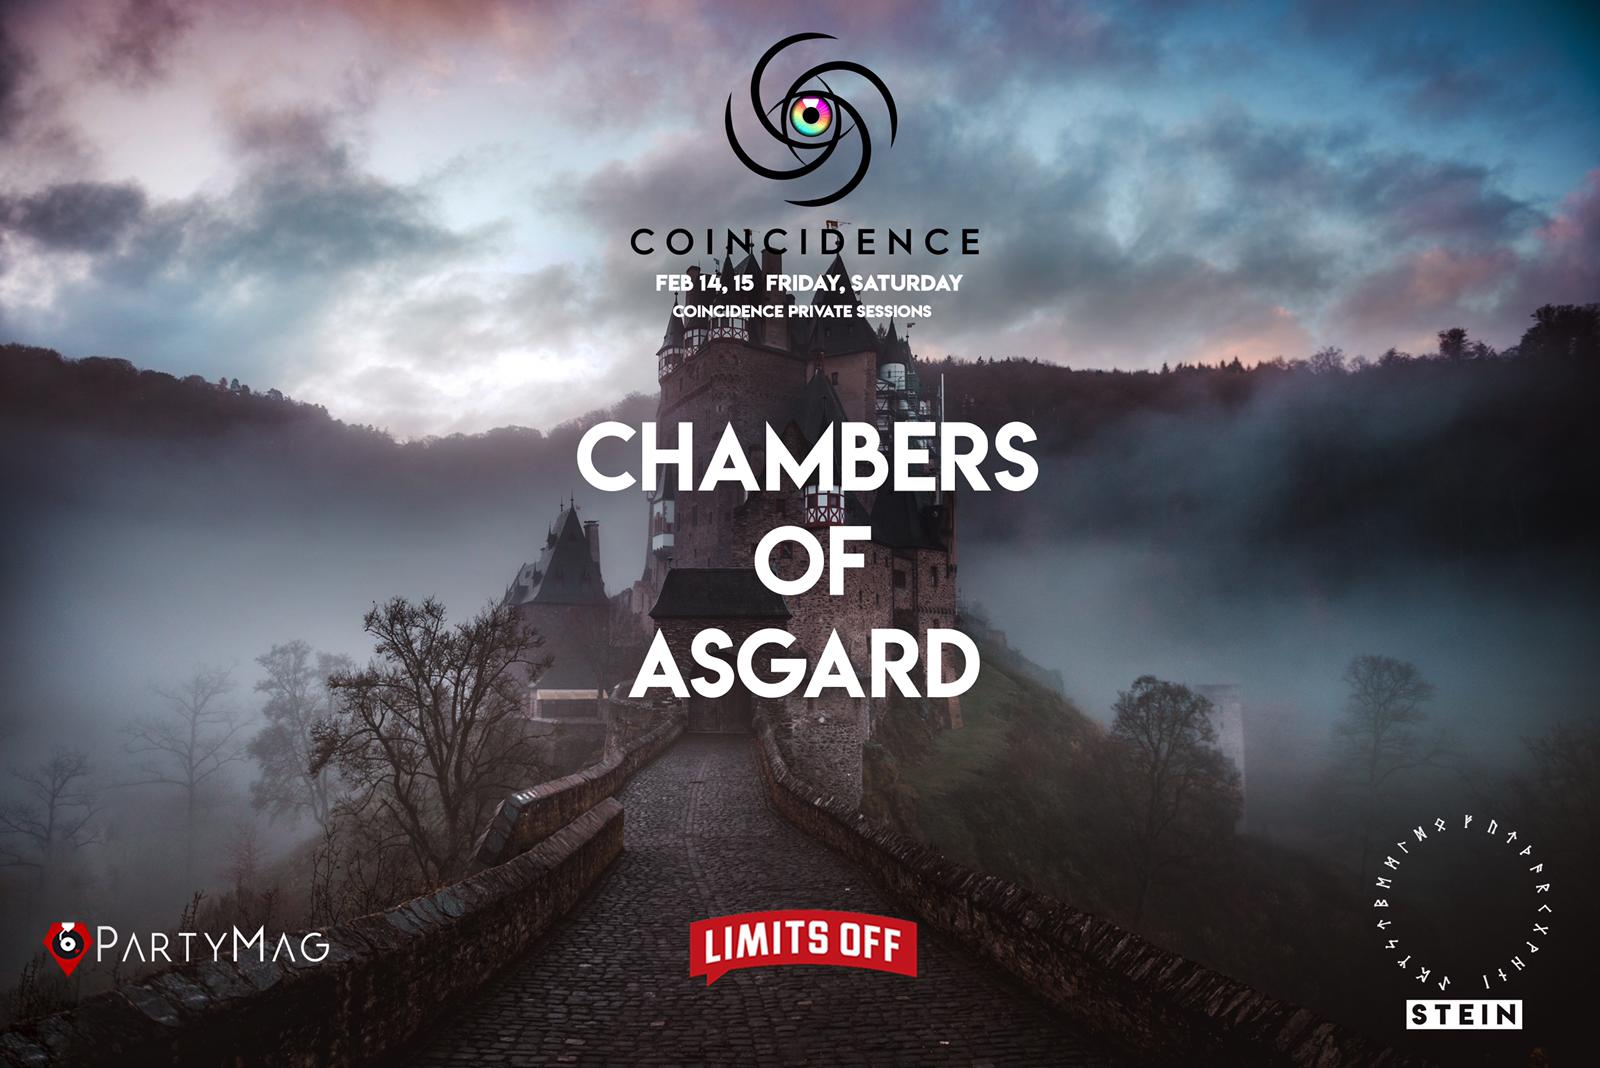 Coincidence // Chambers of Asgard @Stein